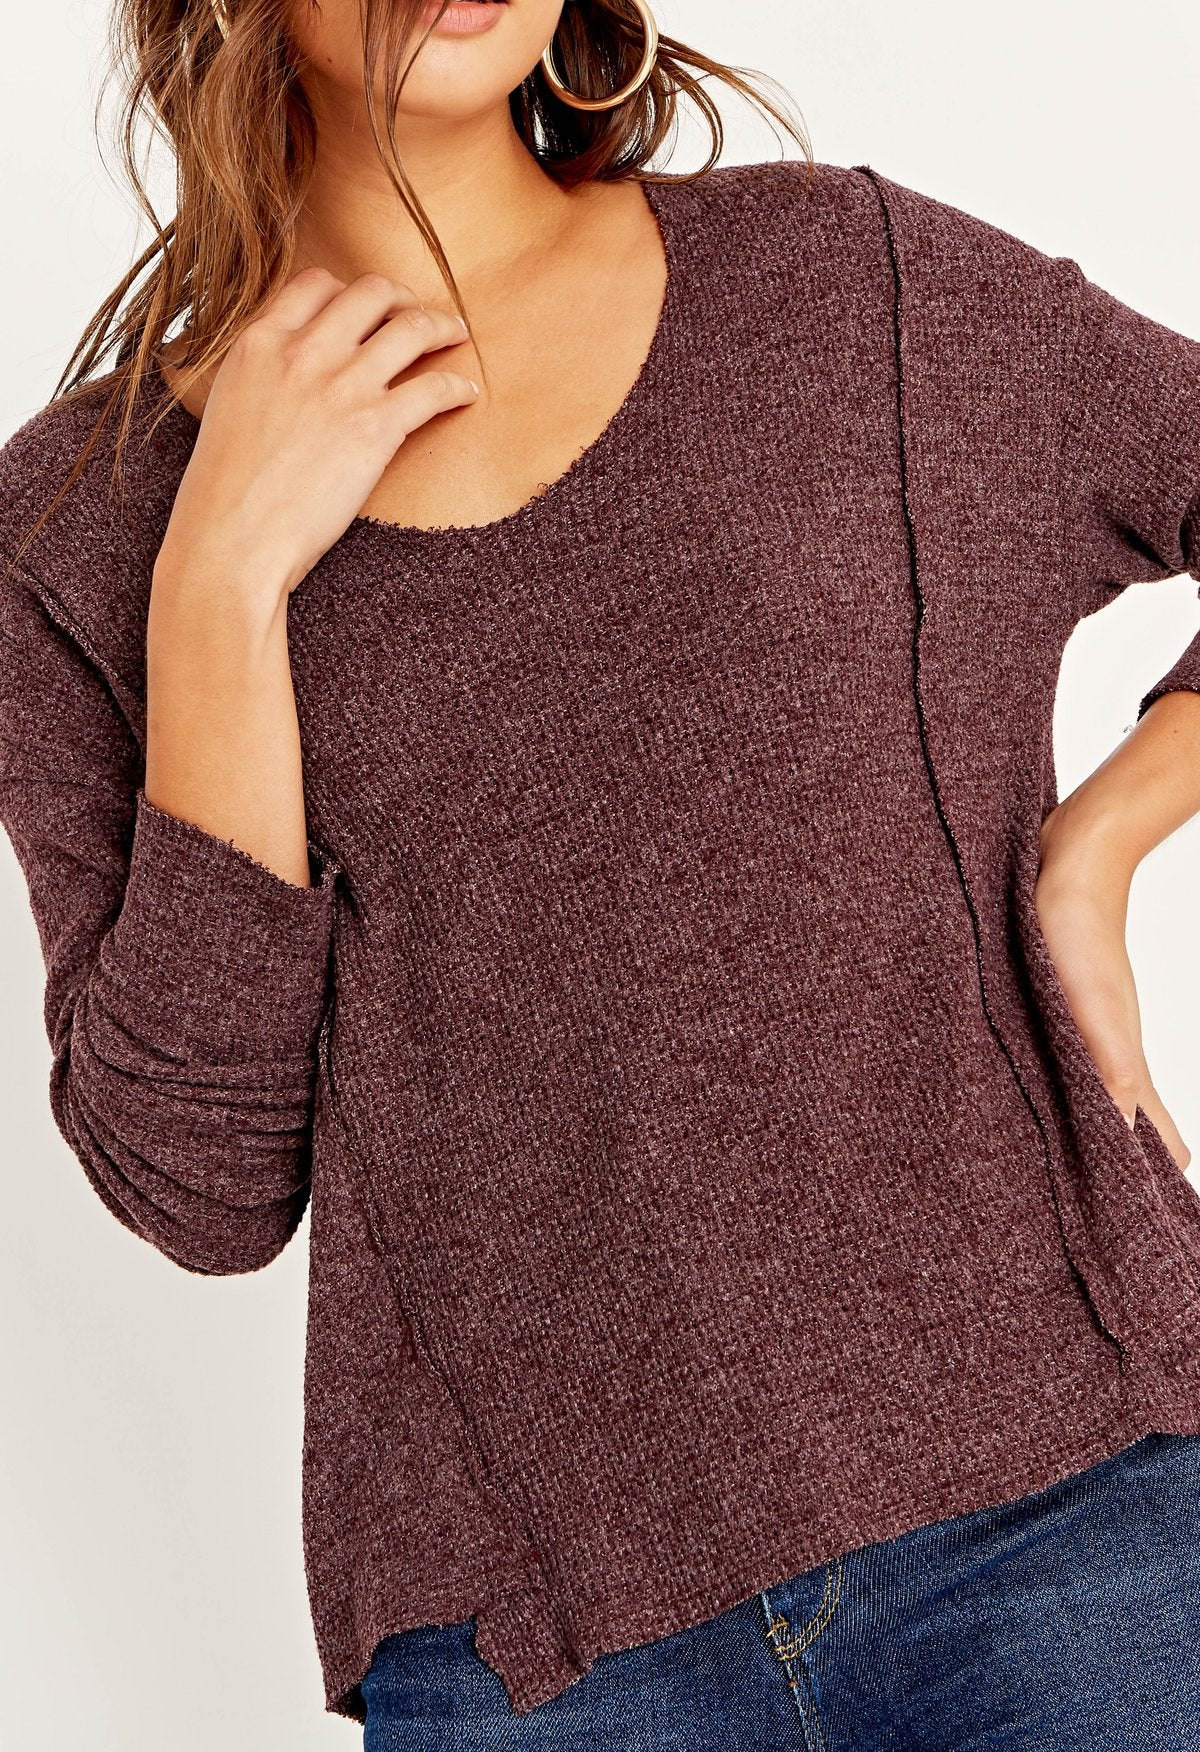 Berry Burgundy Scoop Neck Thermal Top